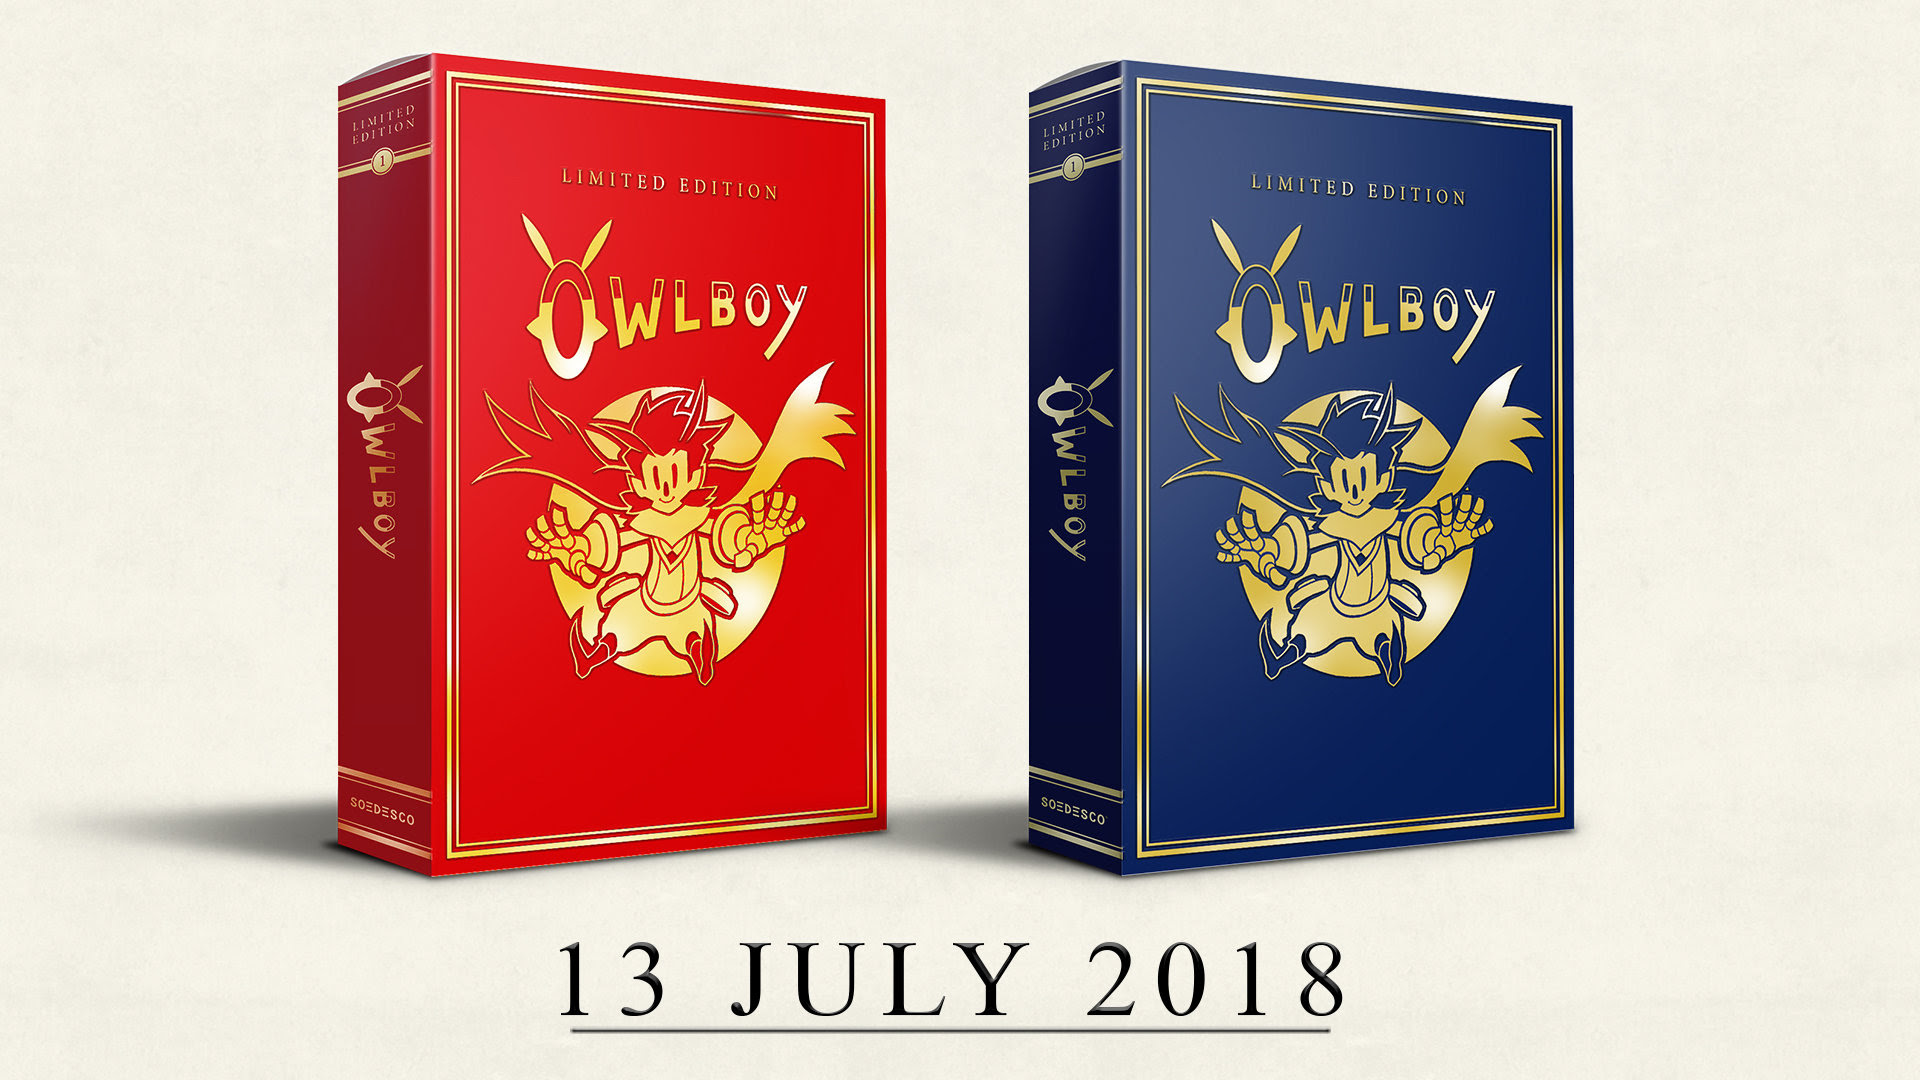 Owlboy's limited edition will be available in July screenshot